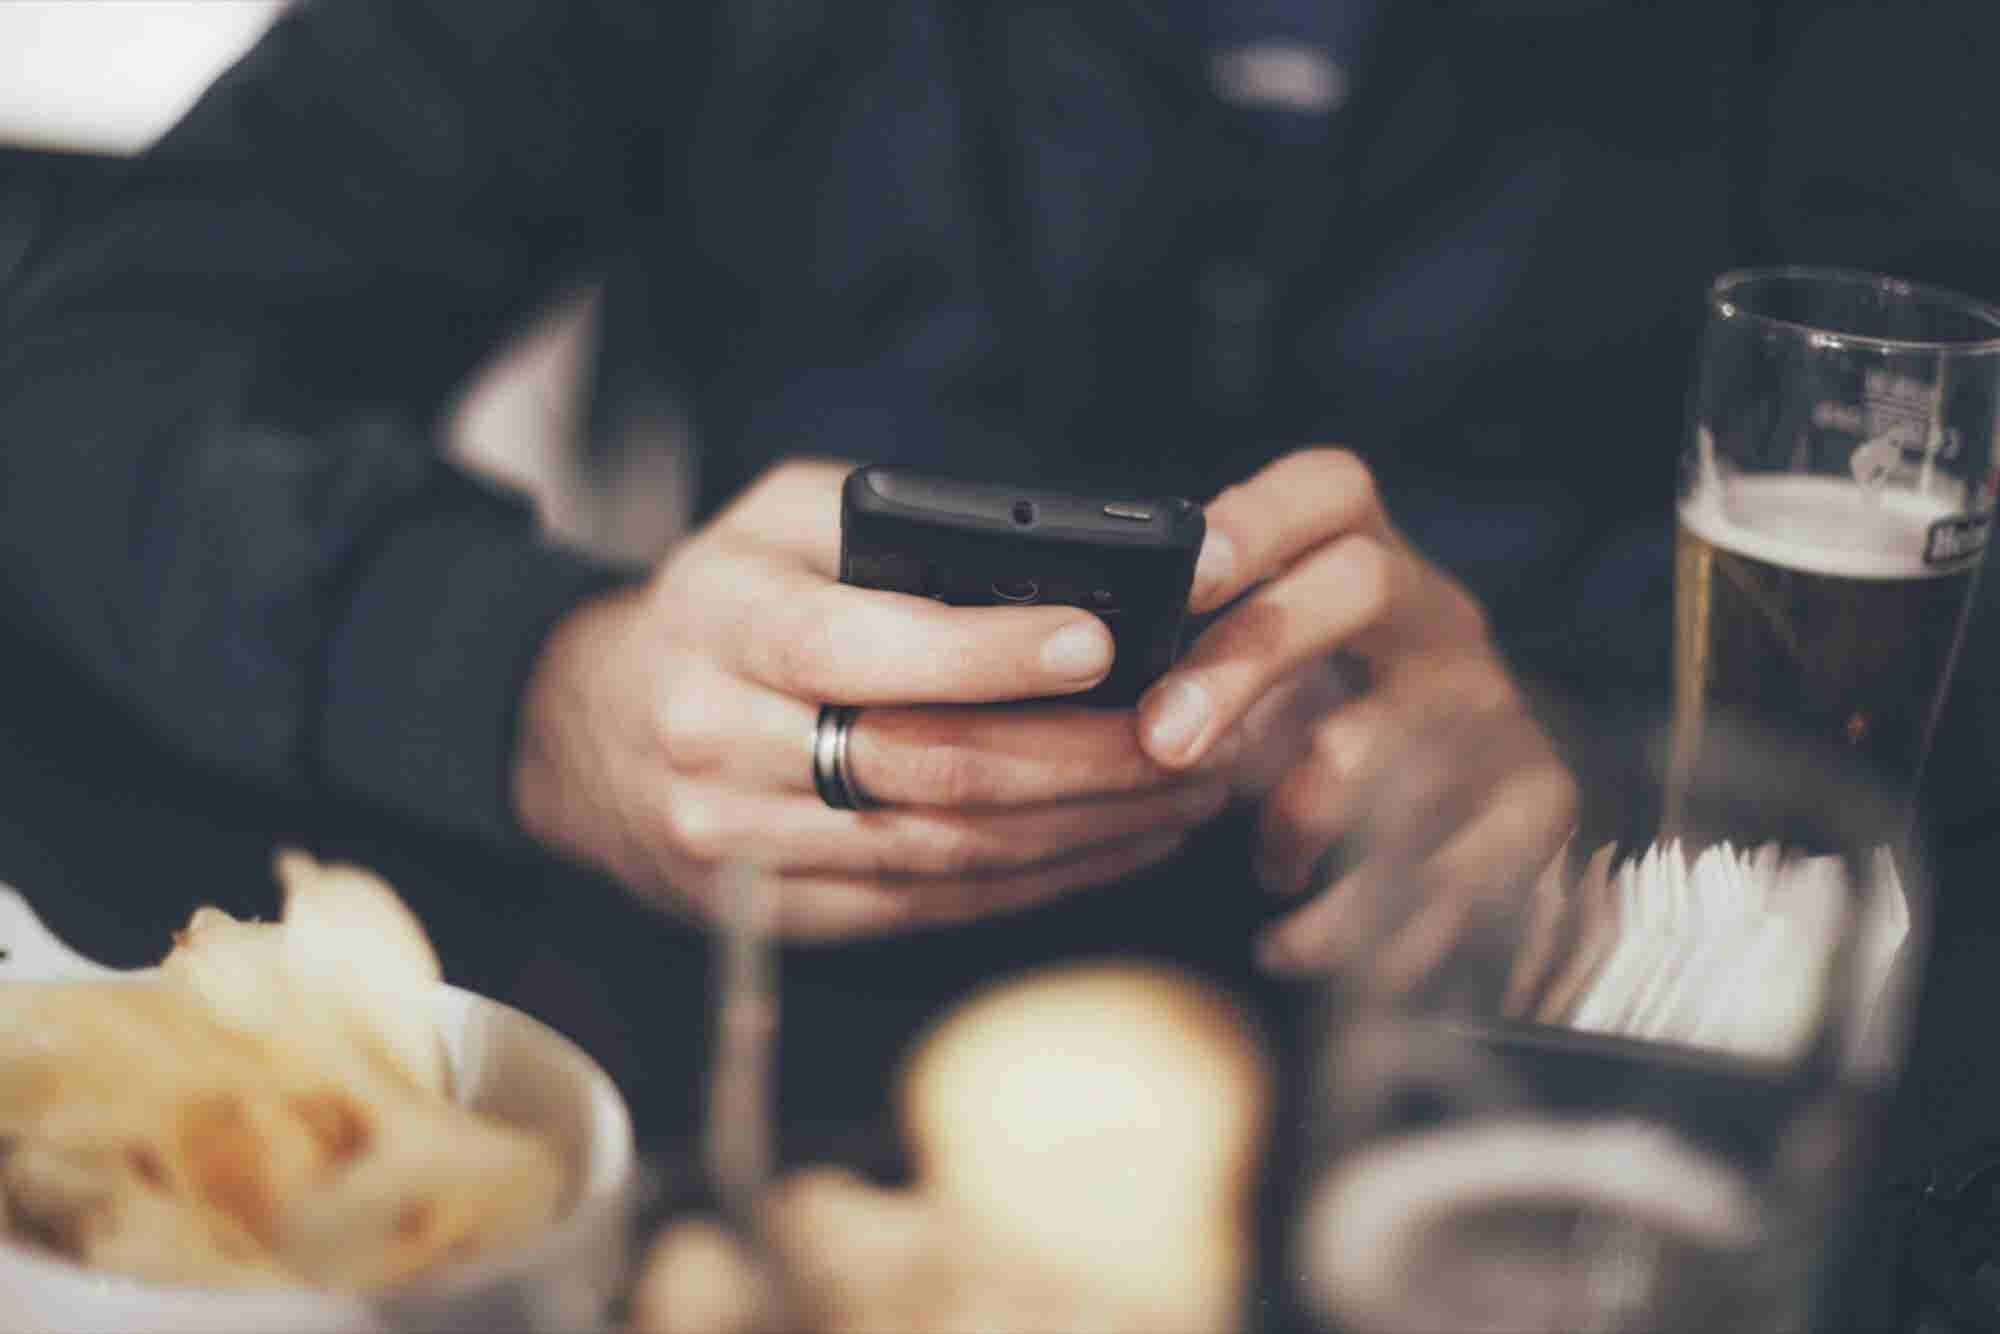 11 Tips to Secure Mobile Devices and Client Data